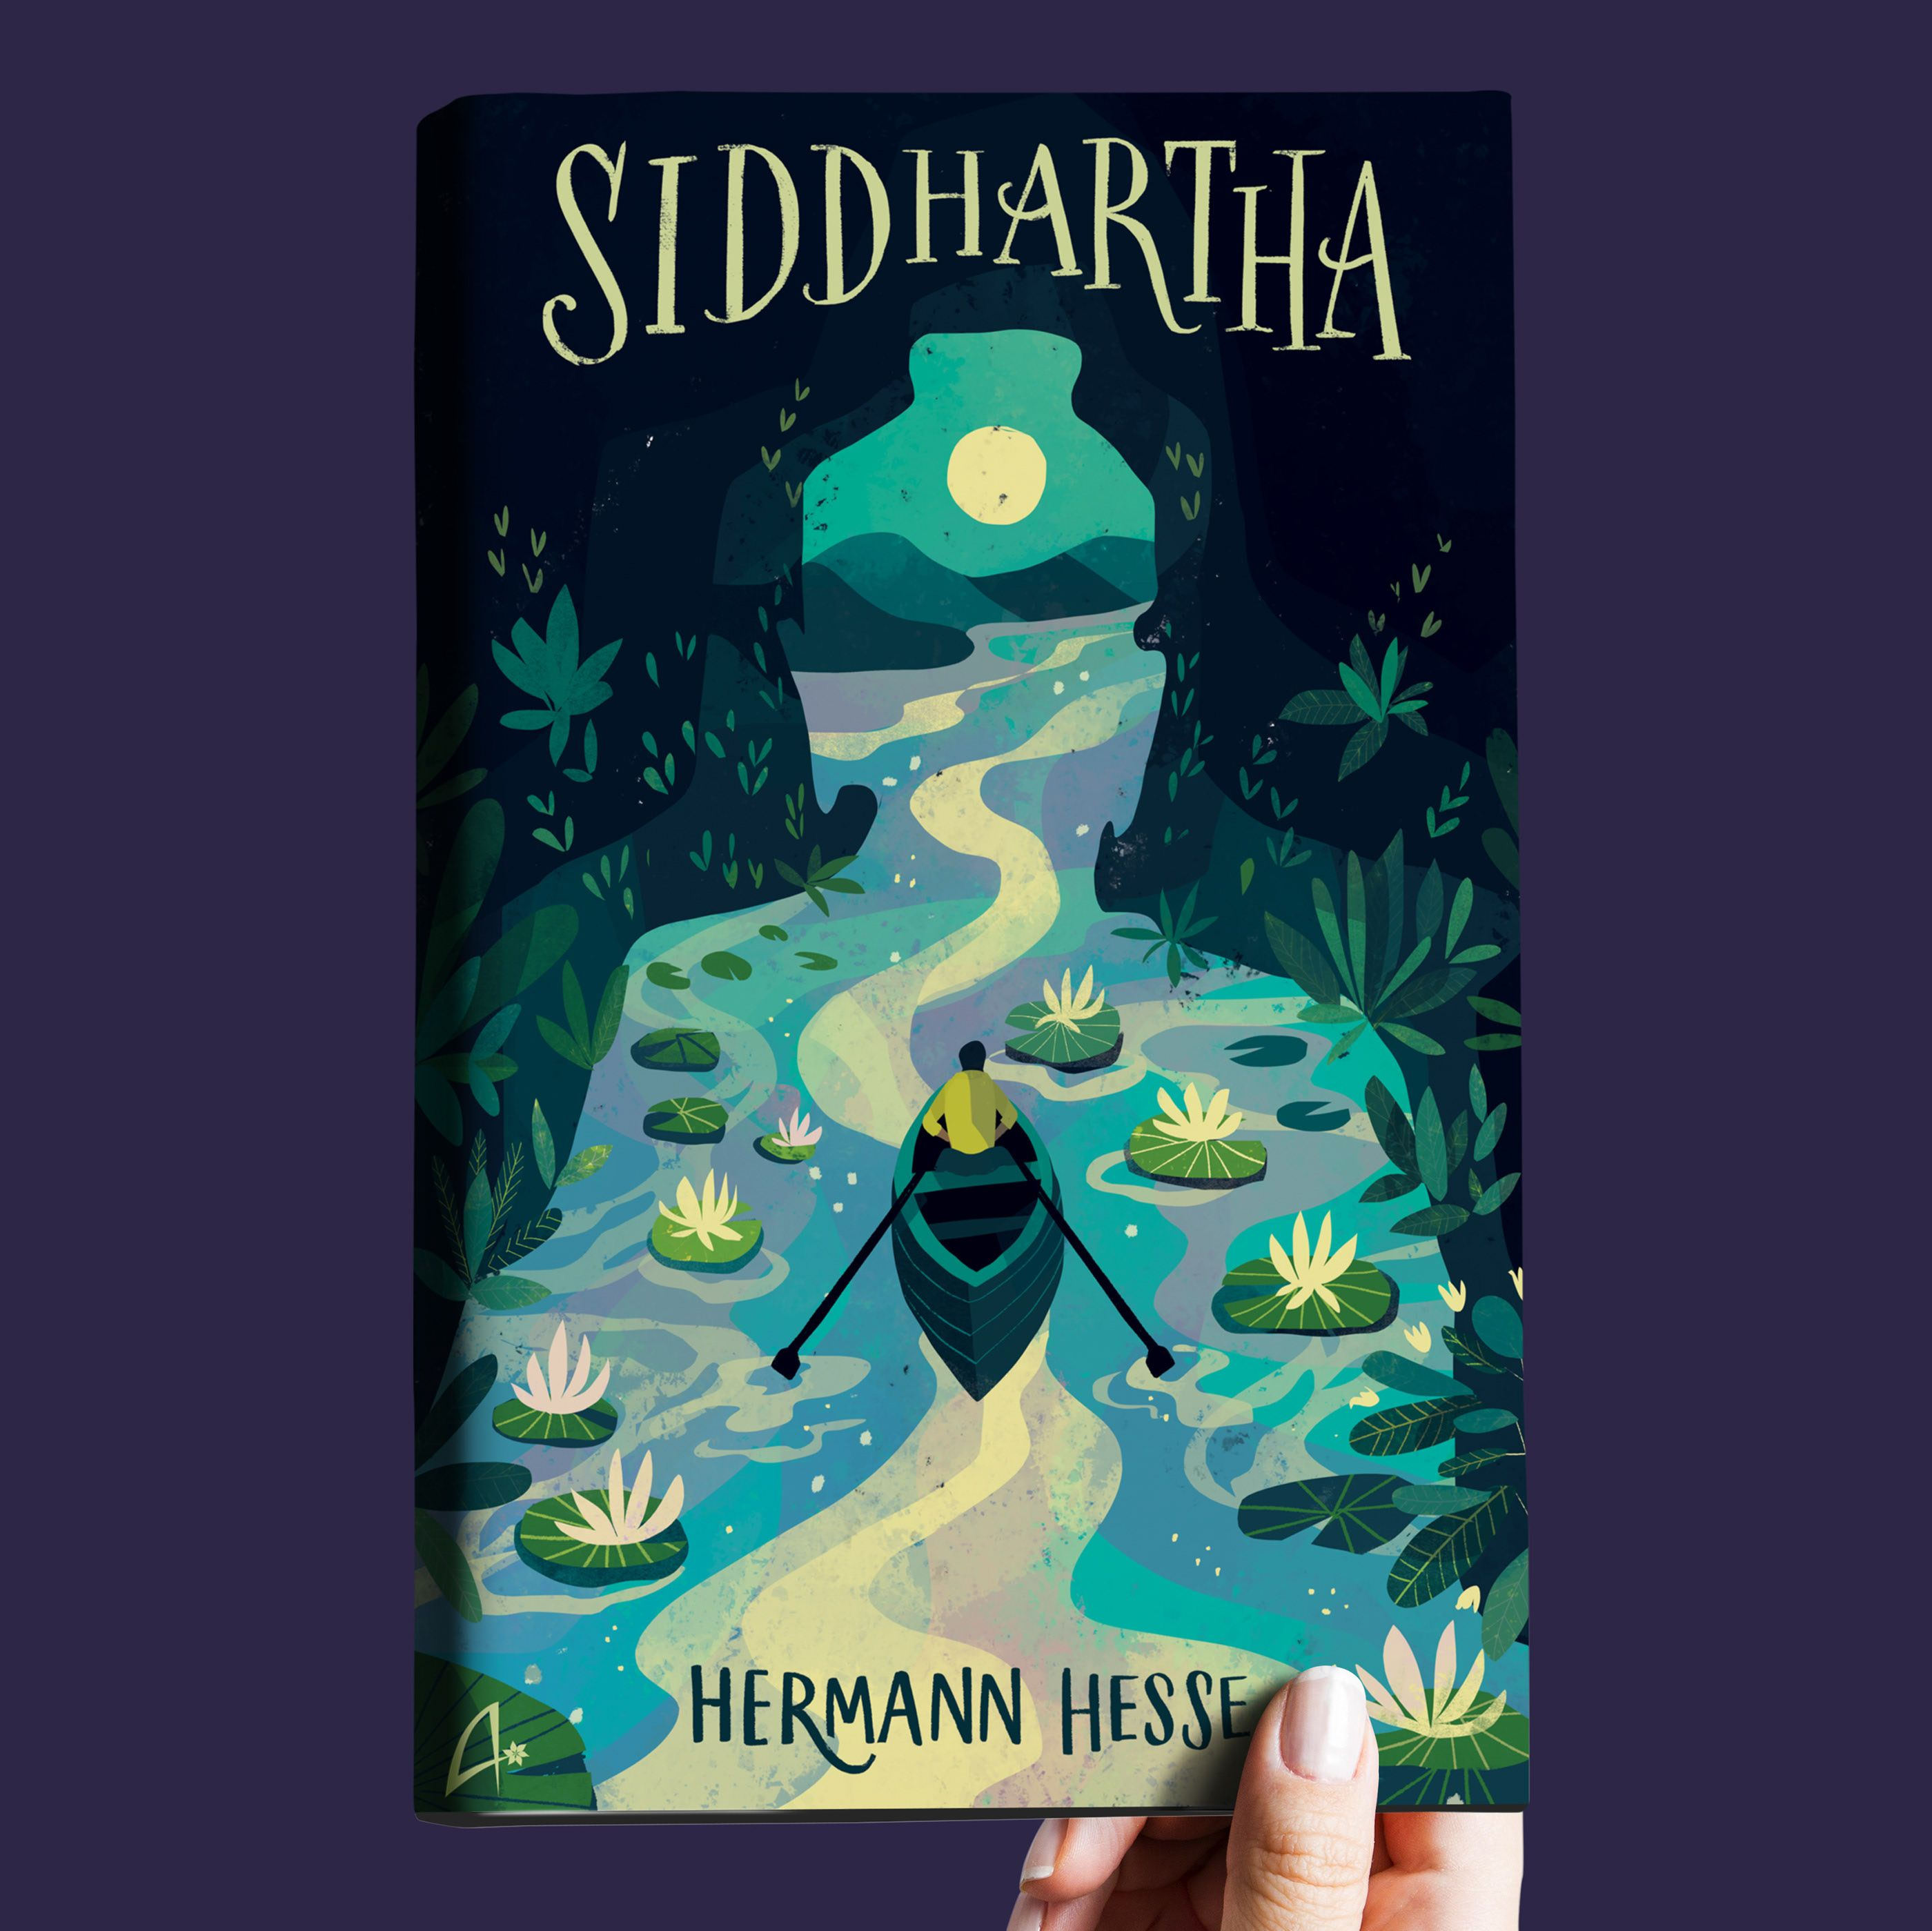 Nice Book Cover Design Of Siddhartha By Hermann Hesse Book Cover Illustration Book Cover Art Design Book Cover Design Inspiration